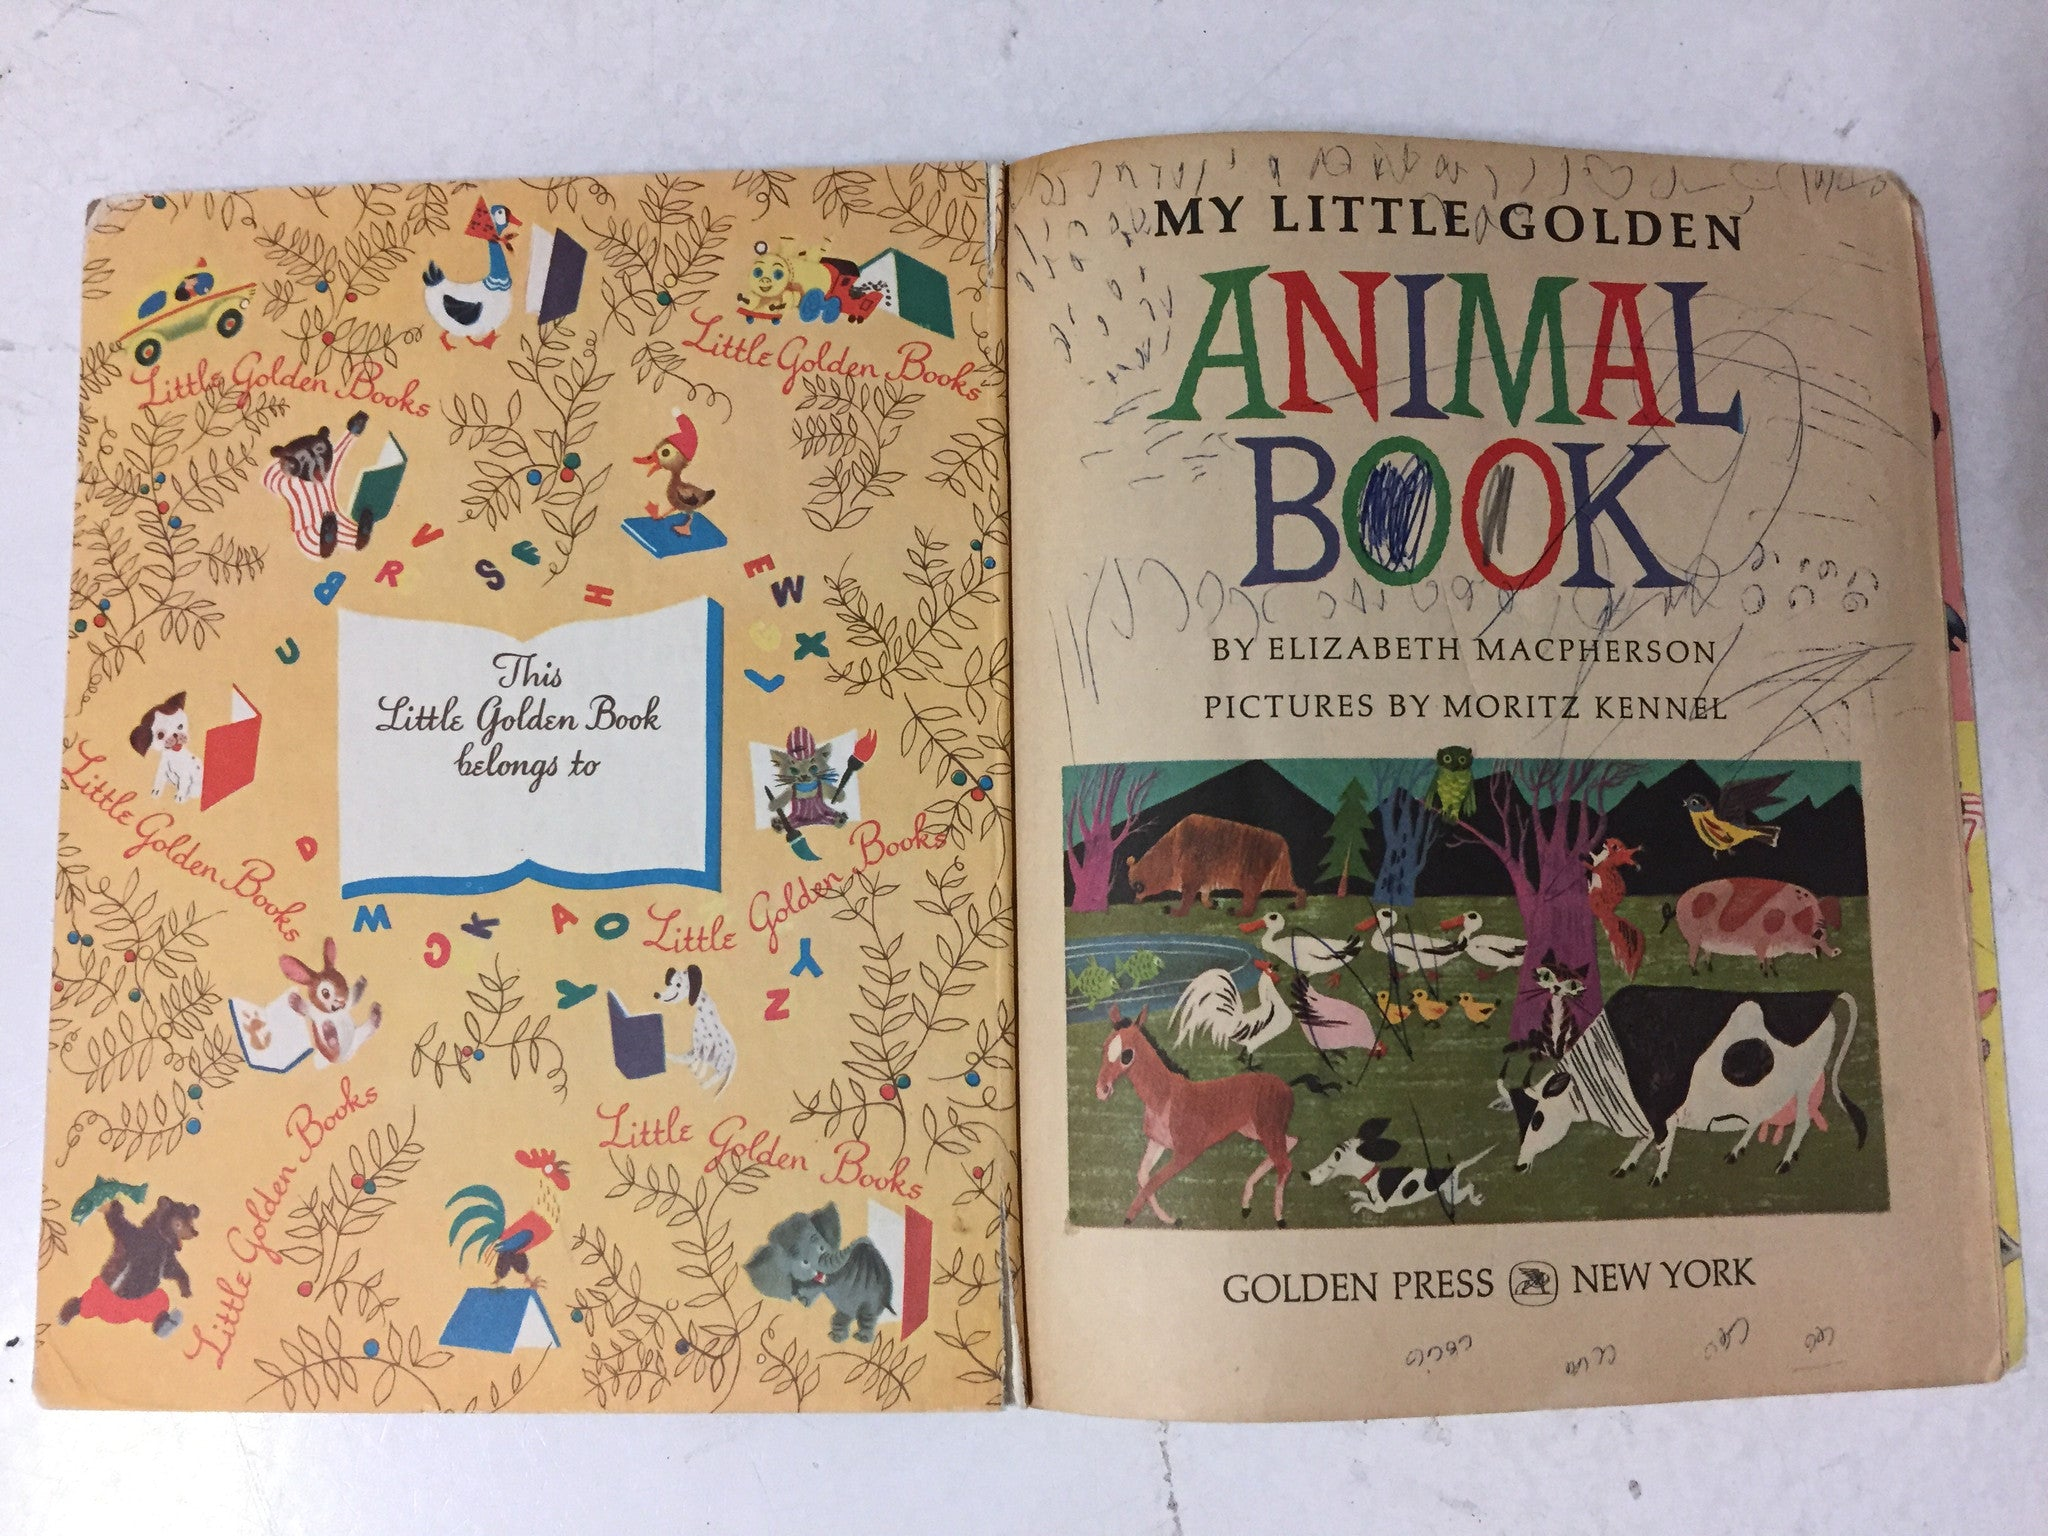 My Little Golden Animal Book - Slickcatbooks